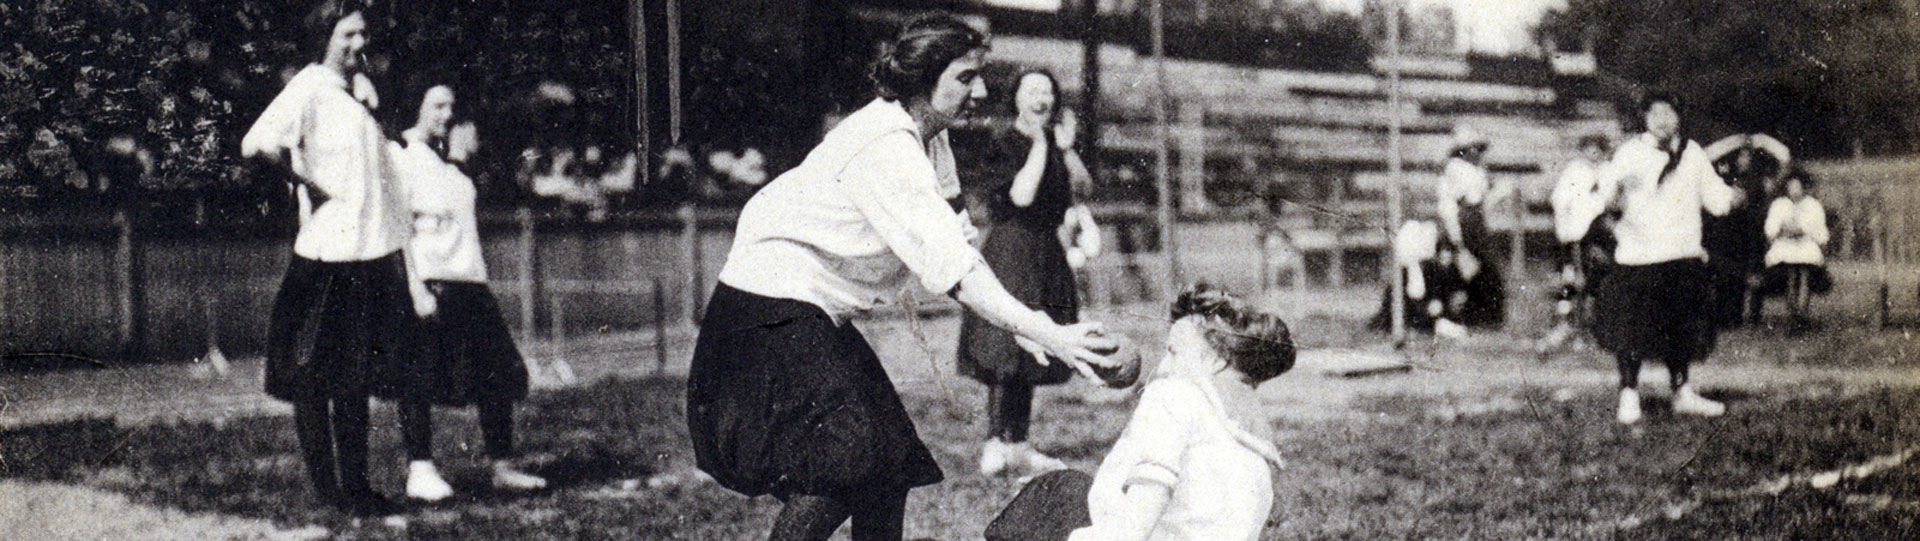 Photo of students playing ball from archives and special collections